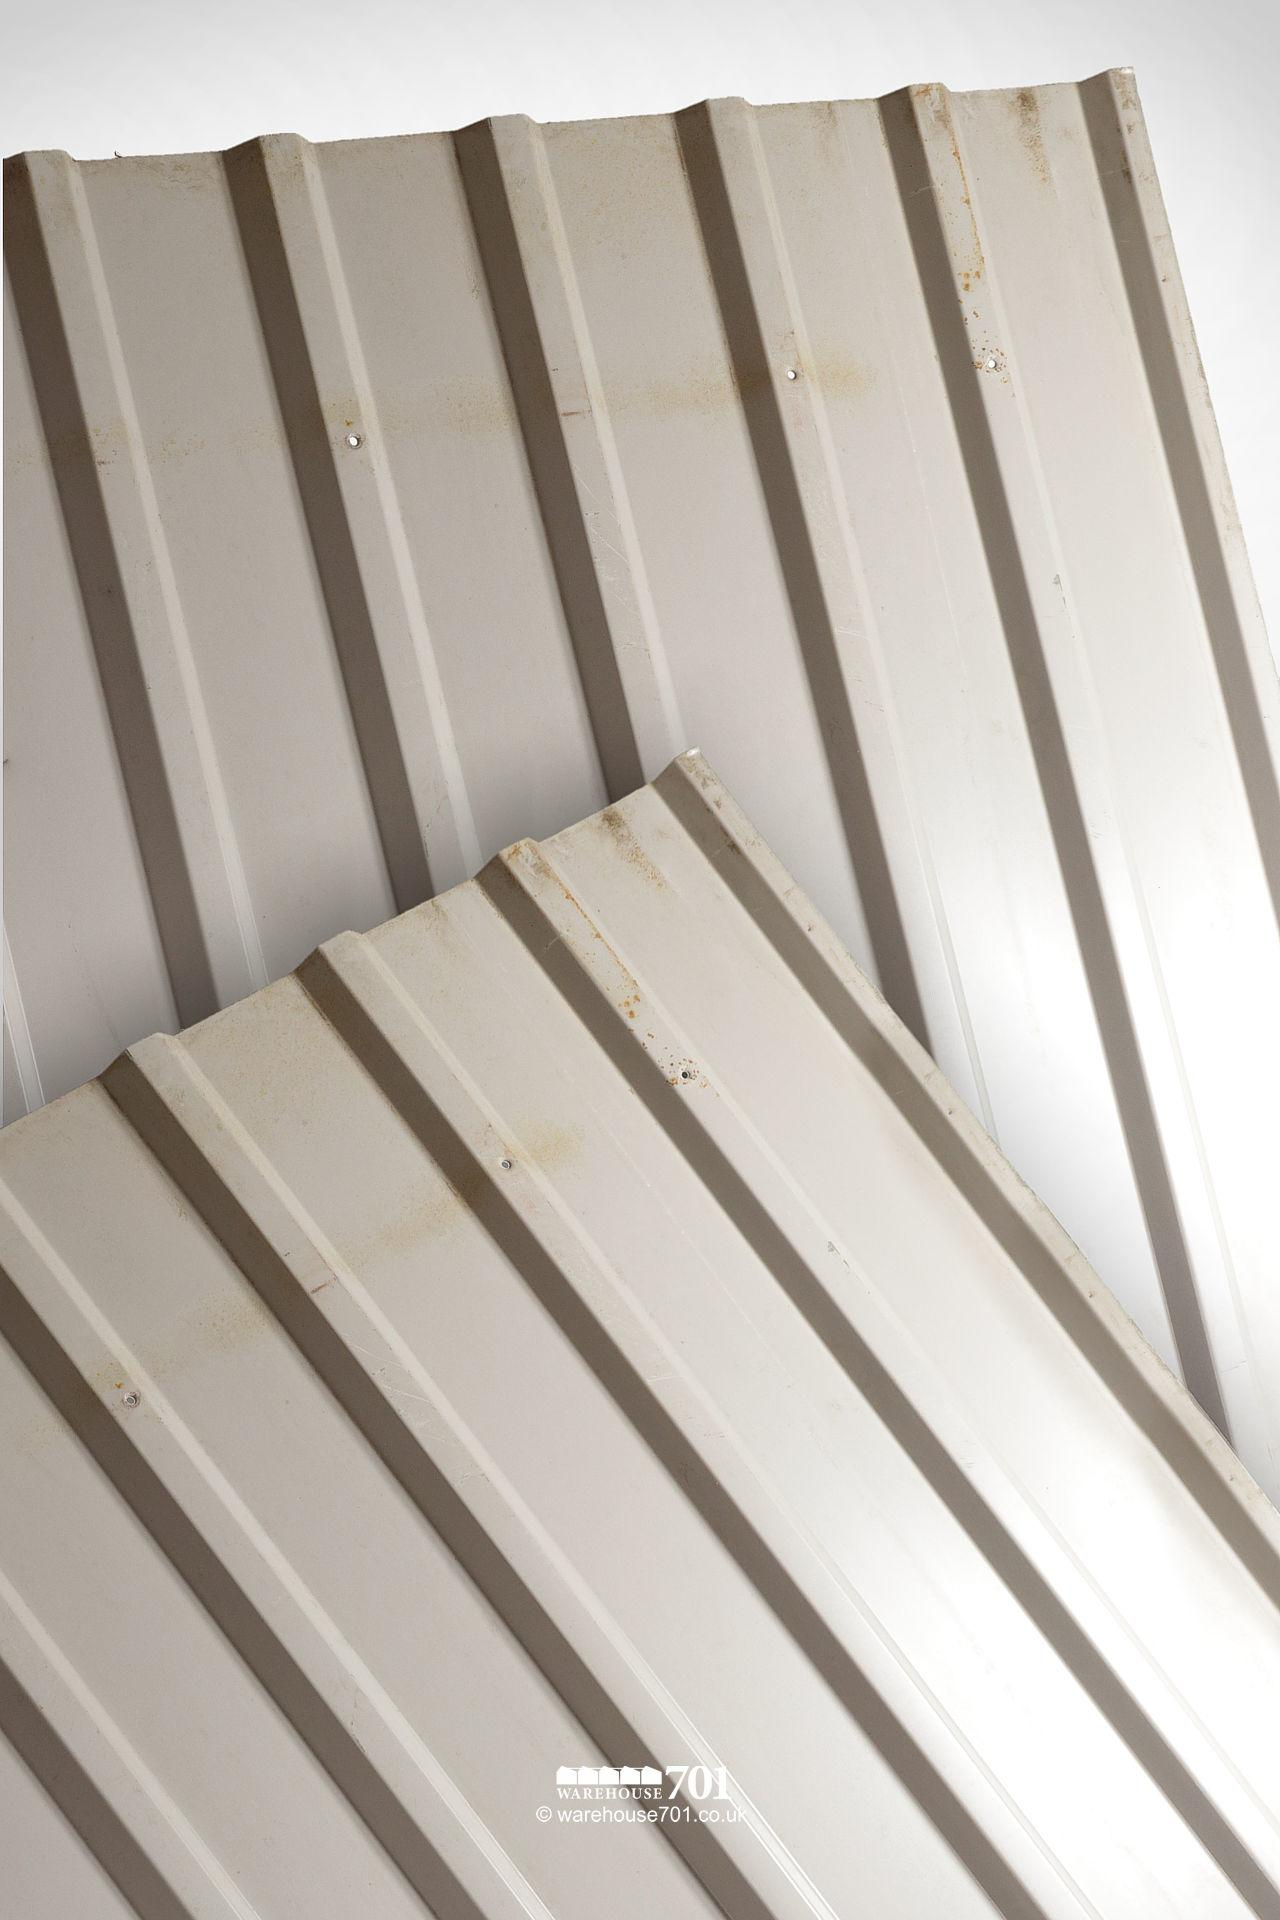 Assorted Reclaimed Box Profile Corrugated Roofing And Building Sheets